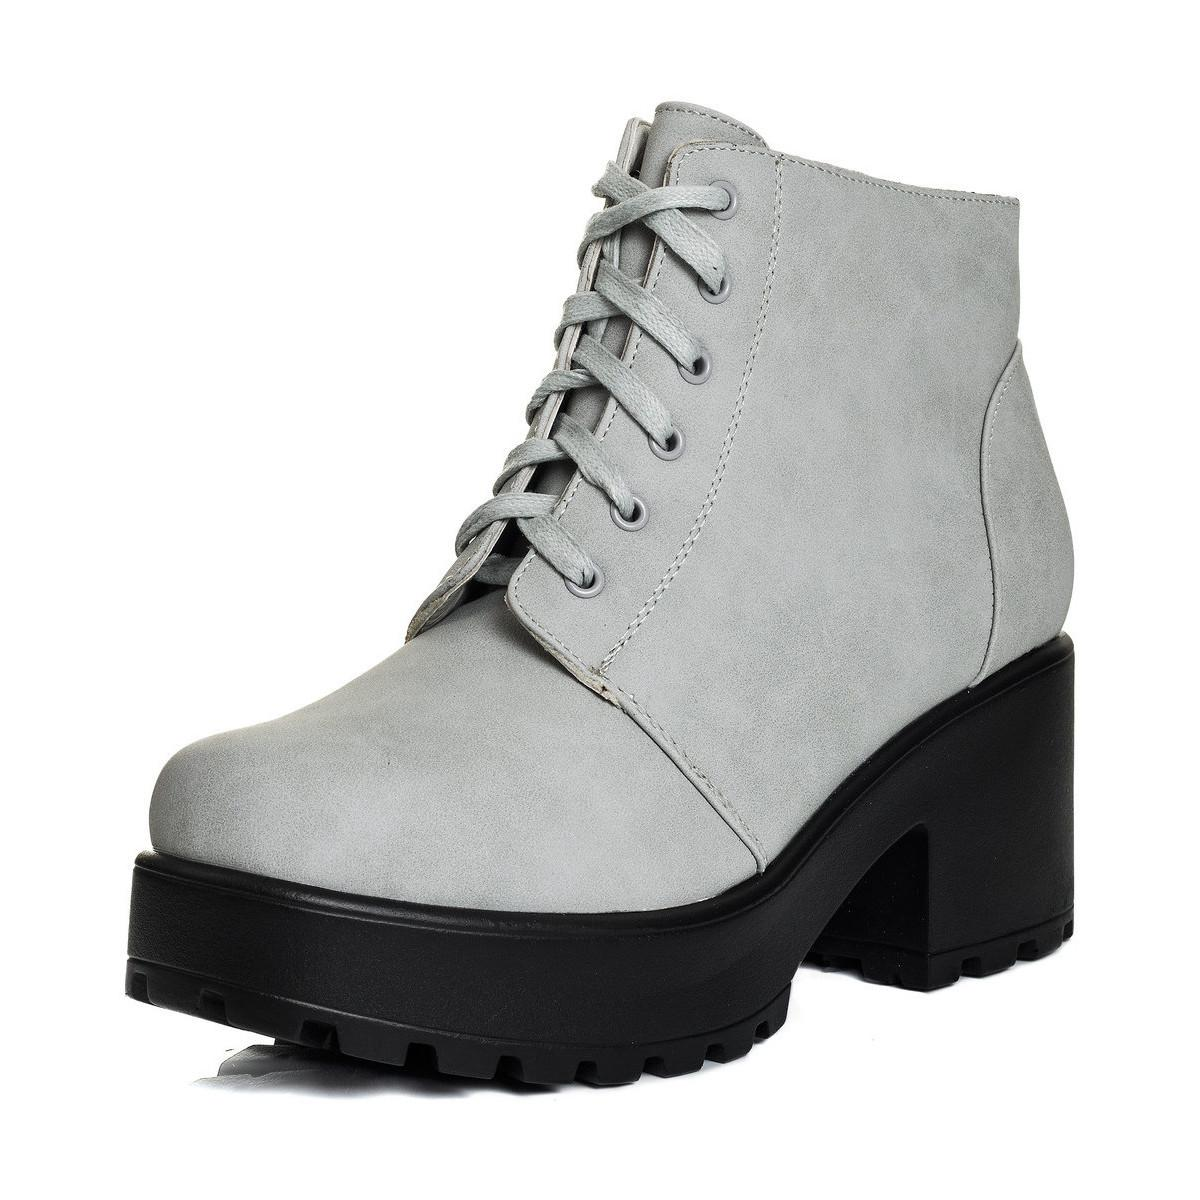 b37d692ccef SPYLOVEBUY Hothead Lace Up Block Heel Ankle Boots Shoes - Stone ...